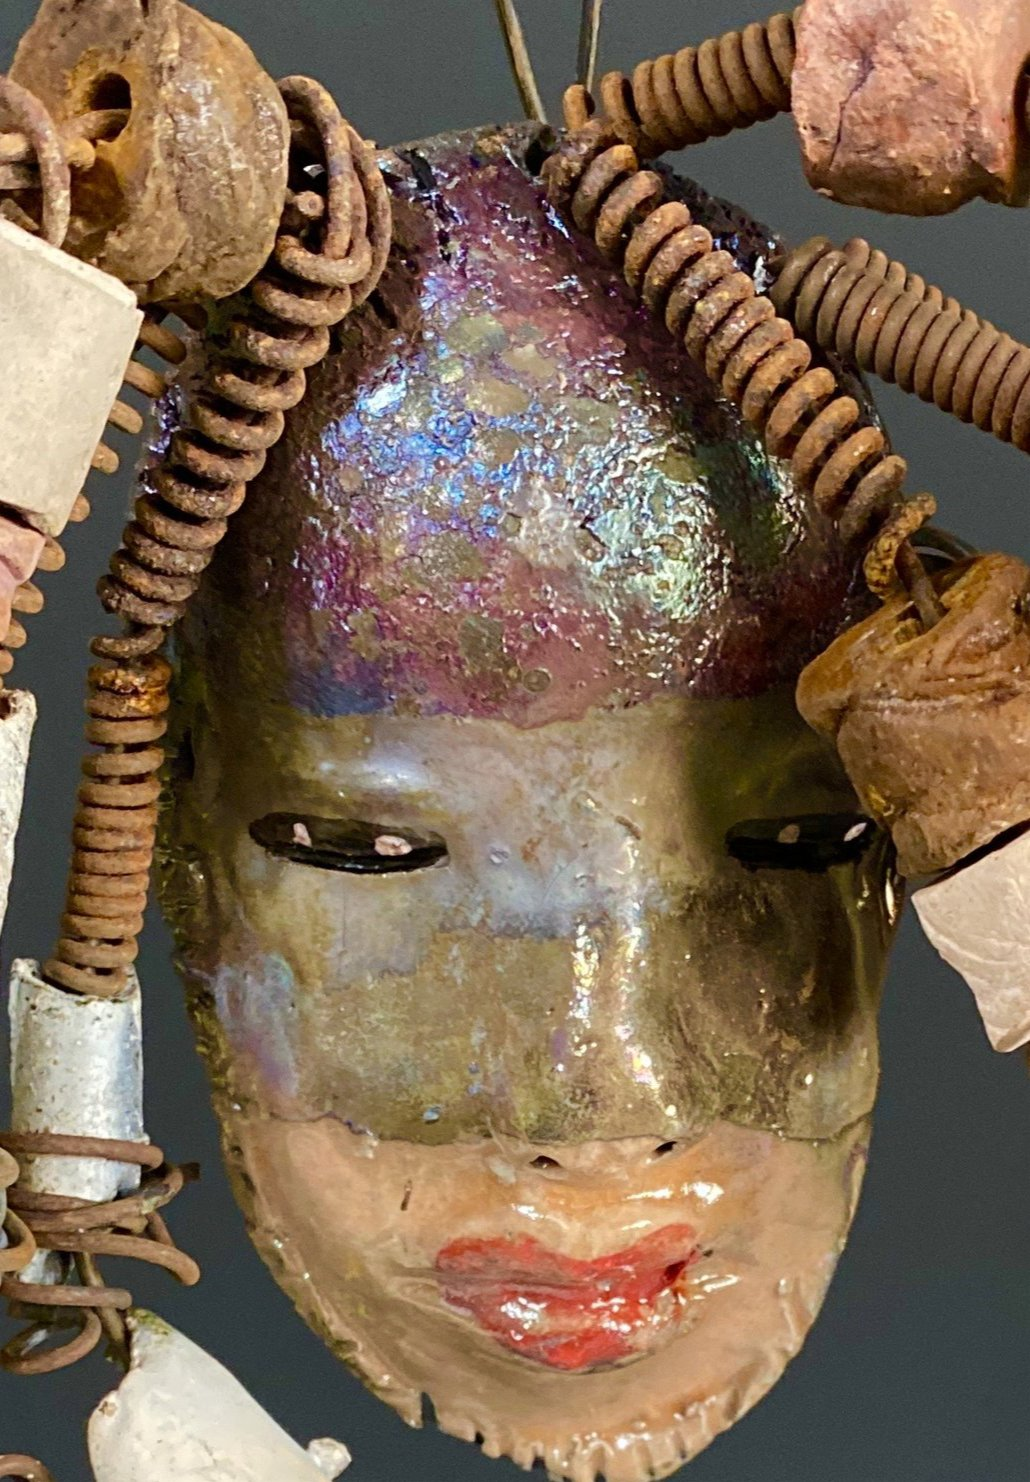 "I started making art soon after seeing authentic African artwork at the Smithsonian Museum of African Art. I was in total awe. Jerri was inspired by my visit there.  Jerri has a two tone copper gold complexion. She is 8"" x 5"" and weighs  11 ozs. Jerri has over 20 handmade raku fired beads. Jerri has over 10 feet of  copper coiled 16 gauge wire hair."